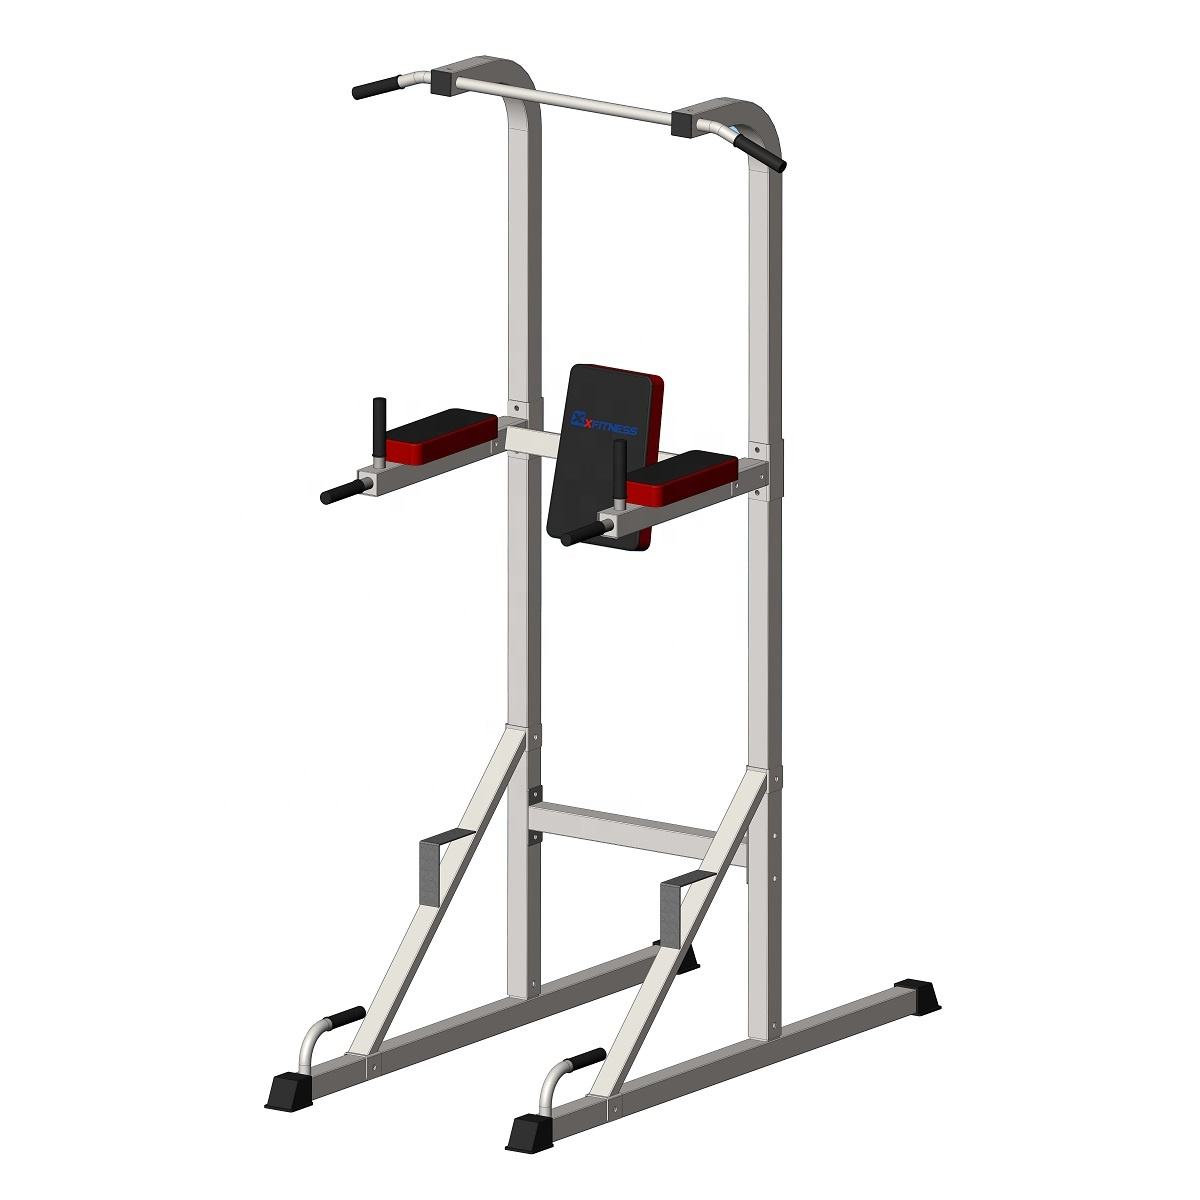 2020 Goedkope Multi Functie Multi Station Voor Custom Logo Home Office Gym Apparatuur Chin Up En Dip Station Power Tower